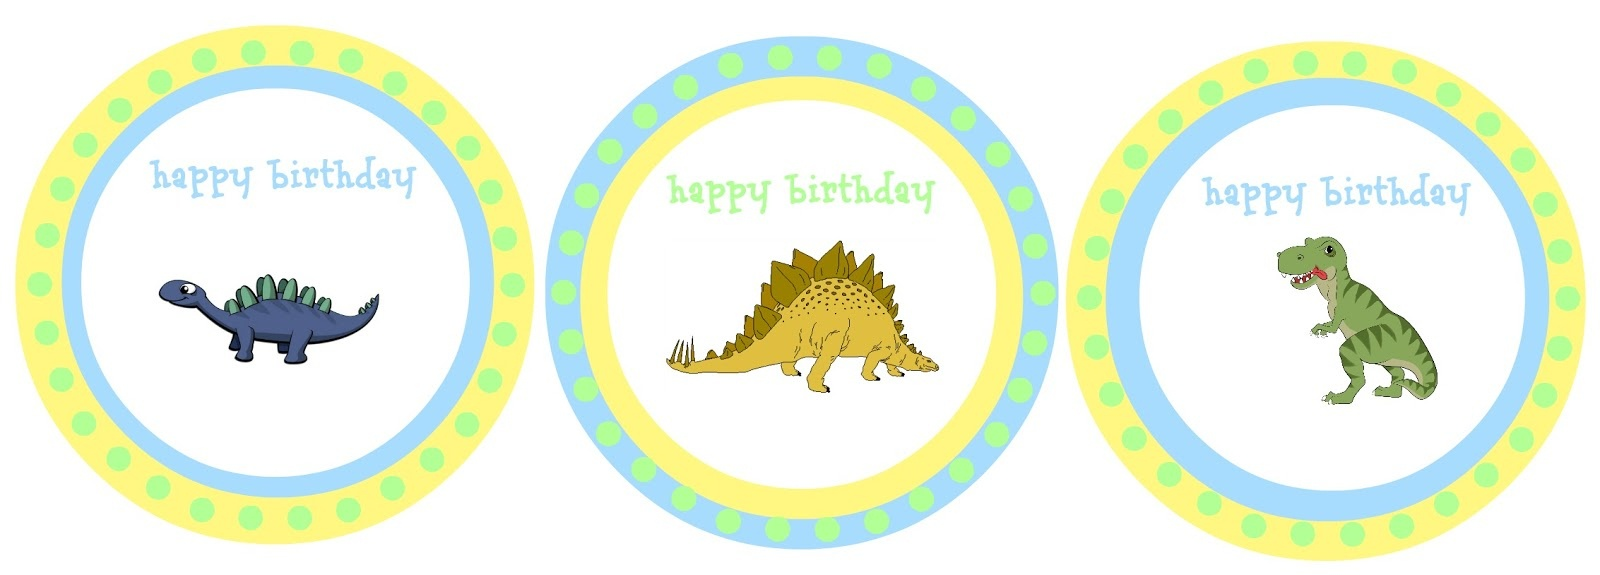 Party With Dinosaurs - Dinosaur Themed Birthday Party - Free Printable Dinosaur Birthday Banner